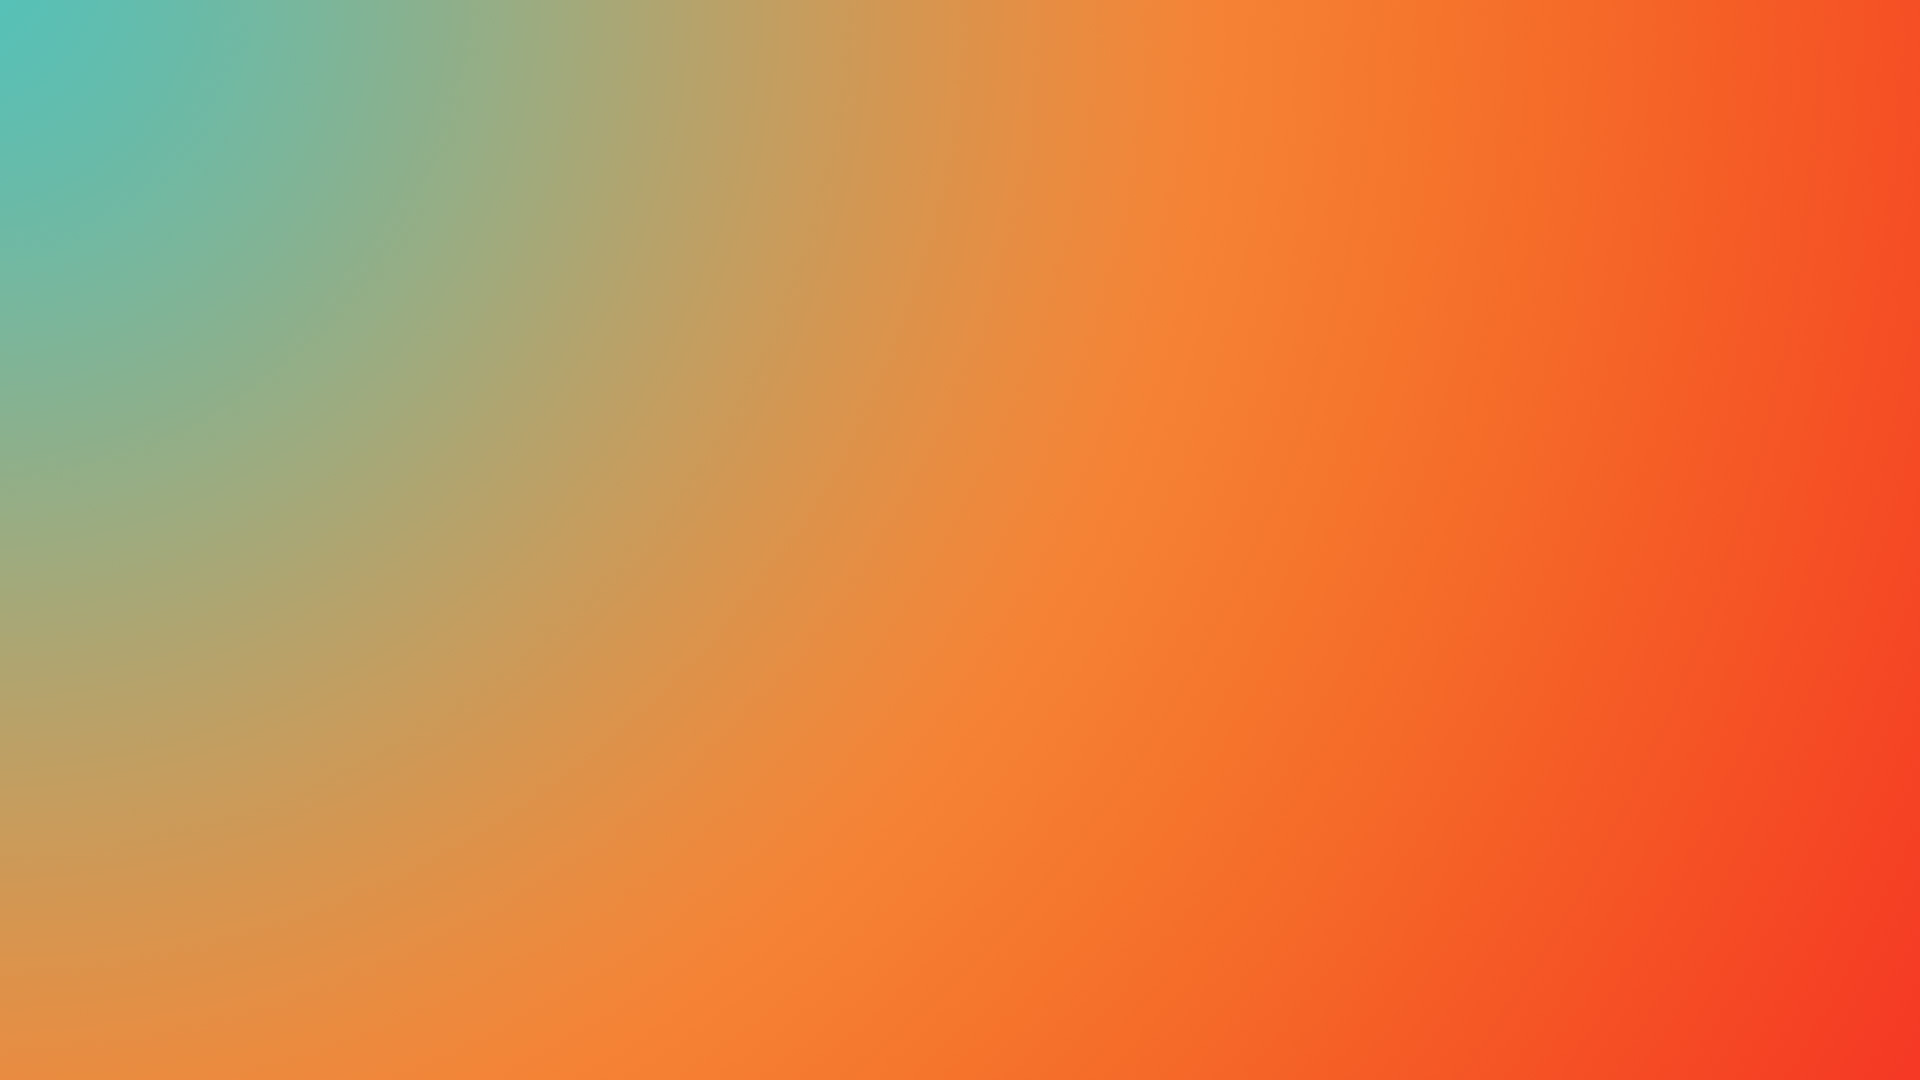 orange-Presentation-Gradient-Background